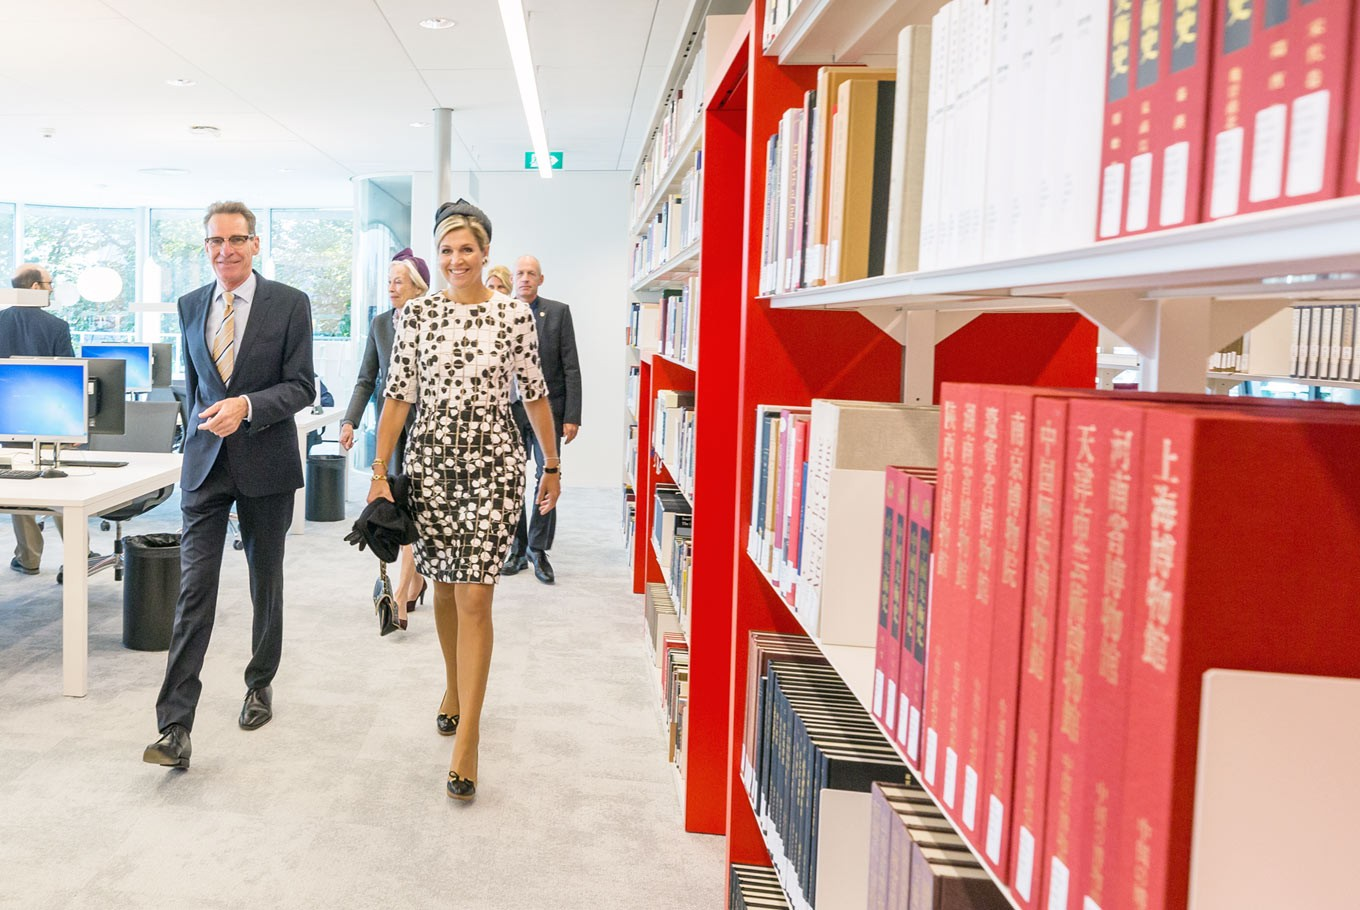 Royal inspection: Queen Máxima of the Netherlands (right) walks through the Asian Library, accompanied by KITLV head Geert Oostindie. (Leiden University/Monique Shaw)